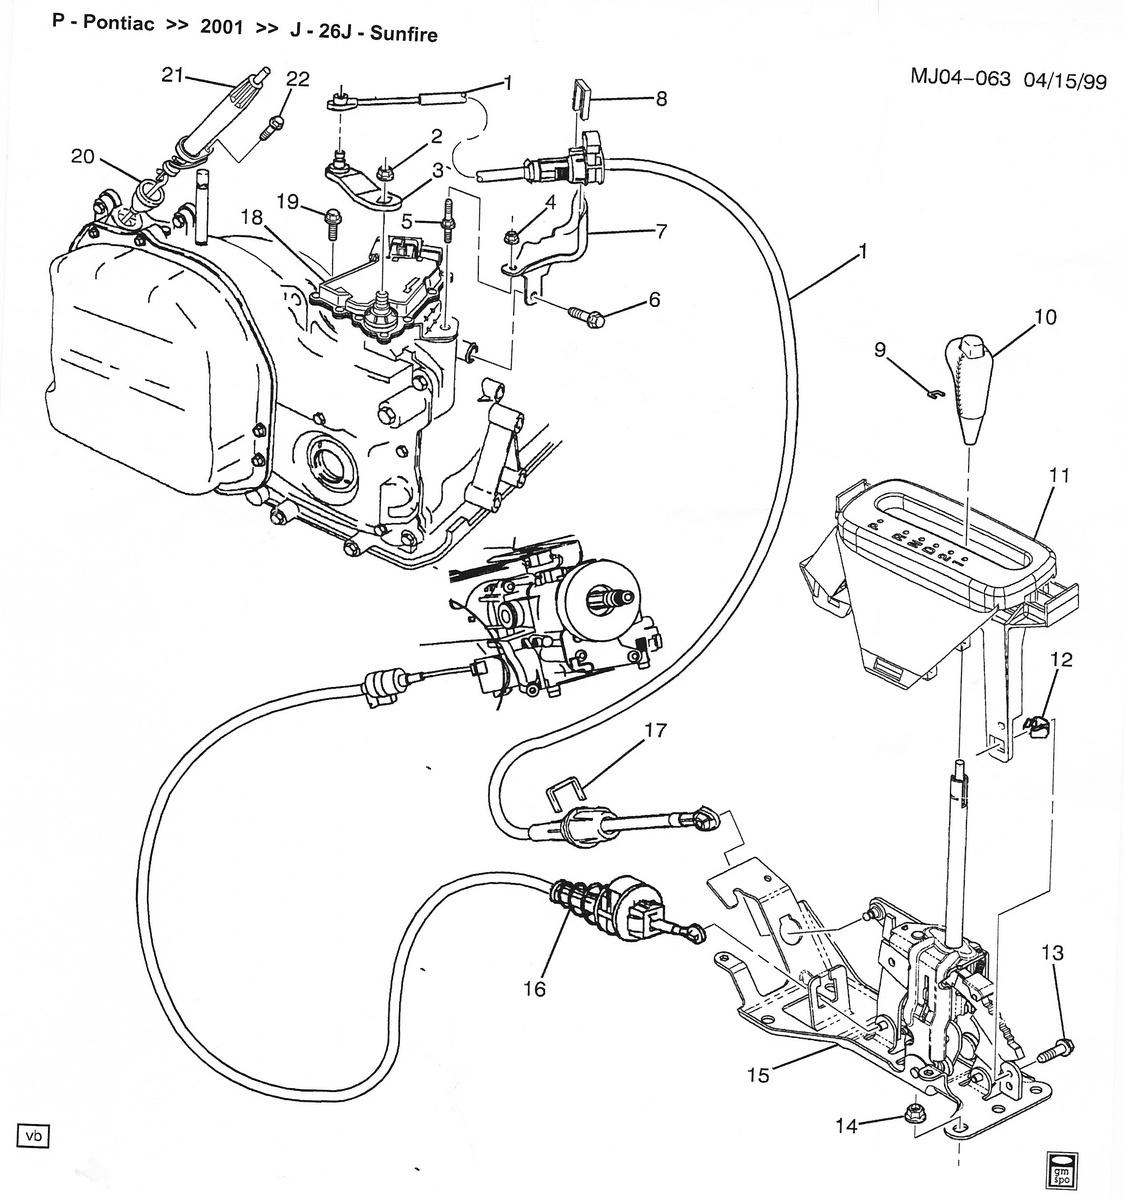 1999 Chevy Malibu Engine Diagram Wiring Library 2002 Chevrolet Cavalier Questions How To Repair My Shifter Linkage Rh Cargurus Com Tahoe Parts